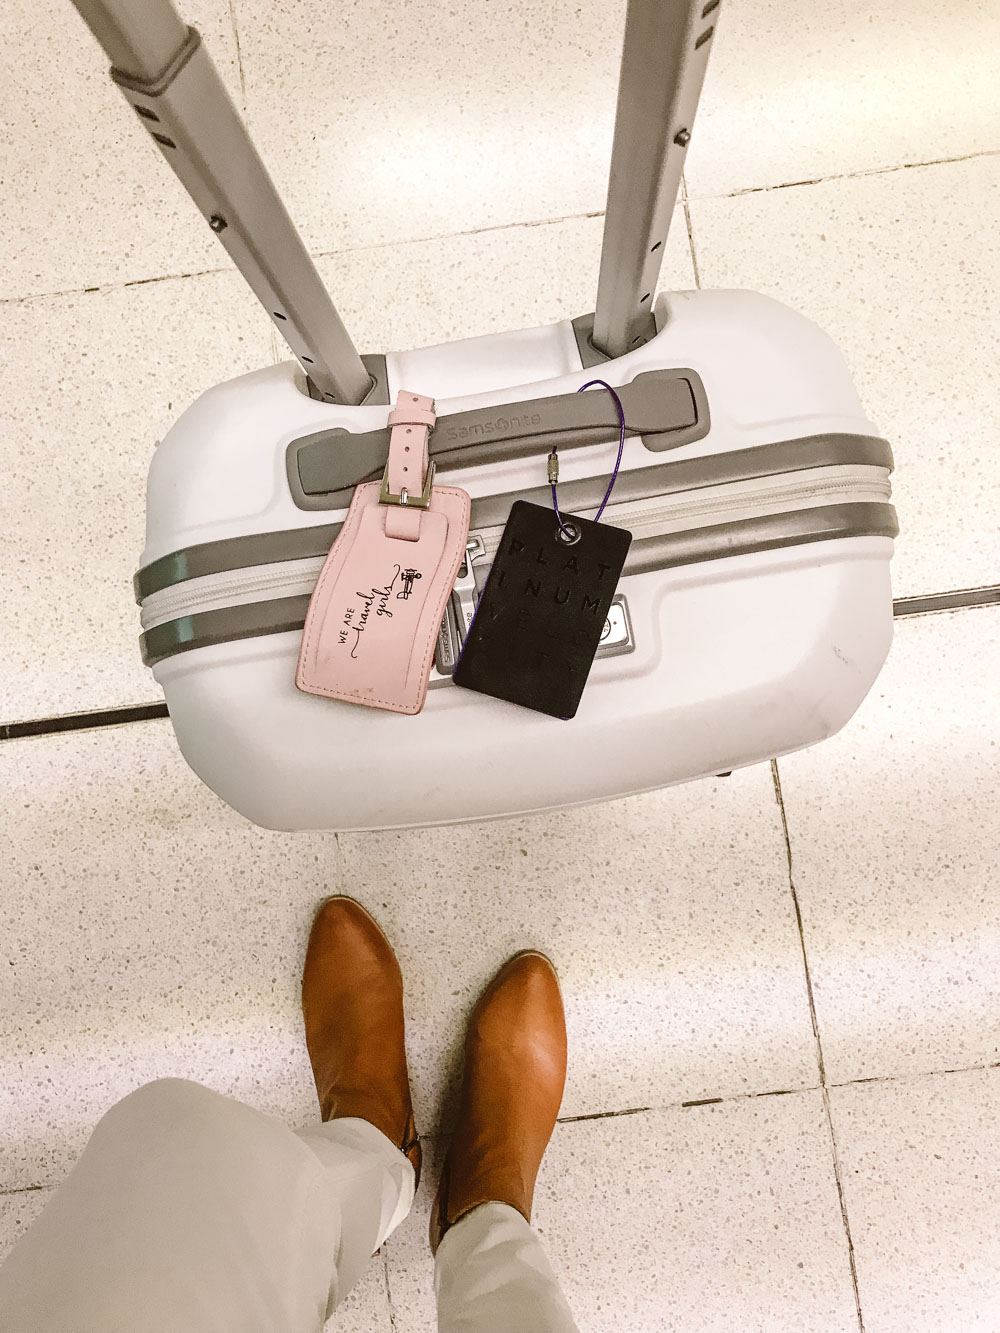 Samsonite luggage with We Are Travel Girls pink luggage tag